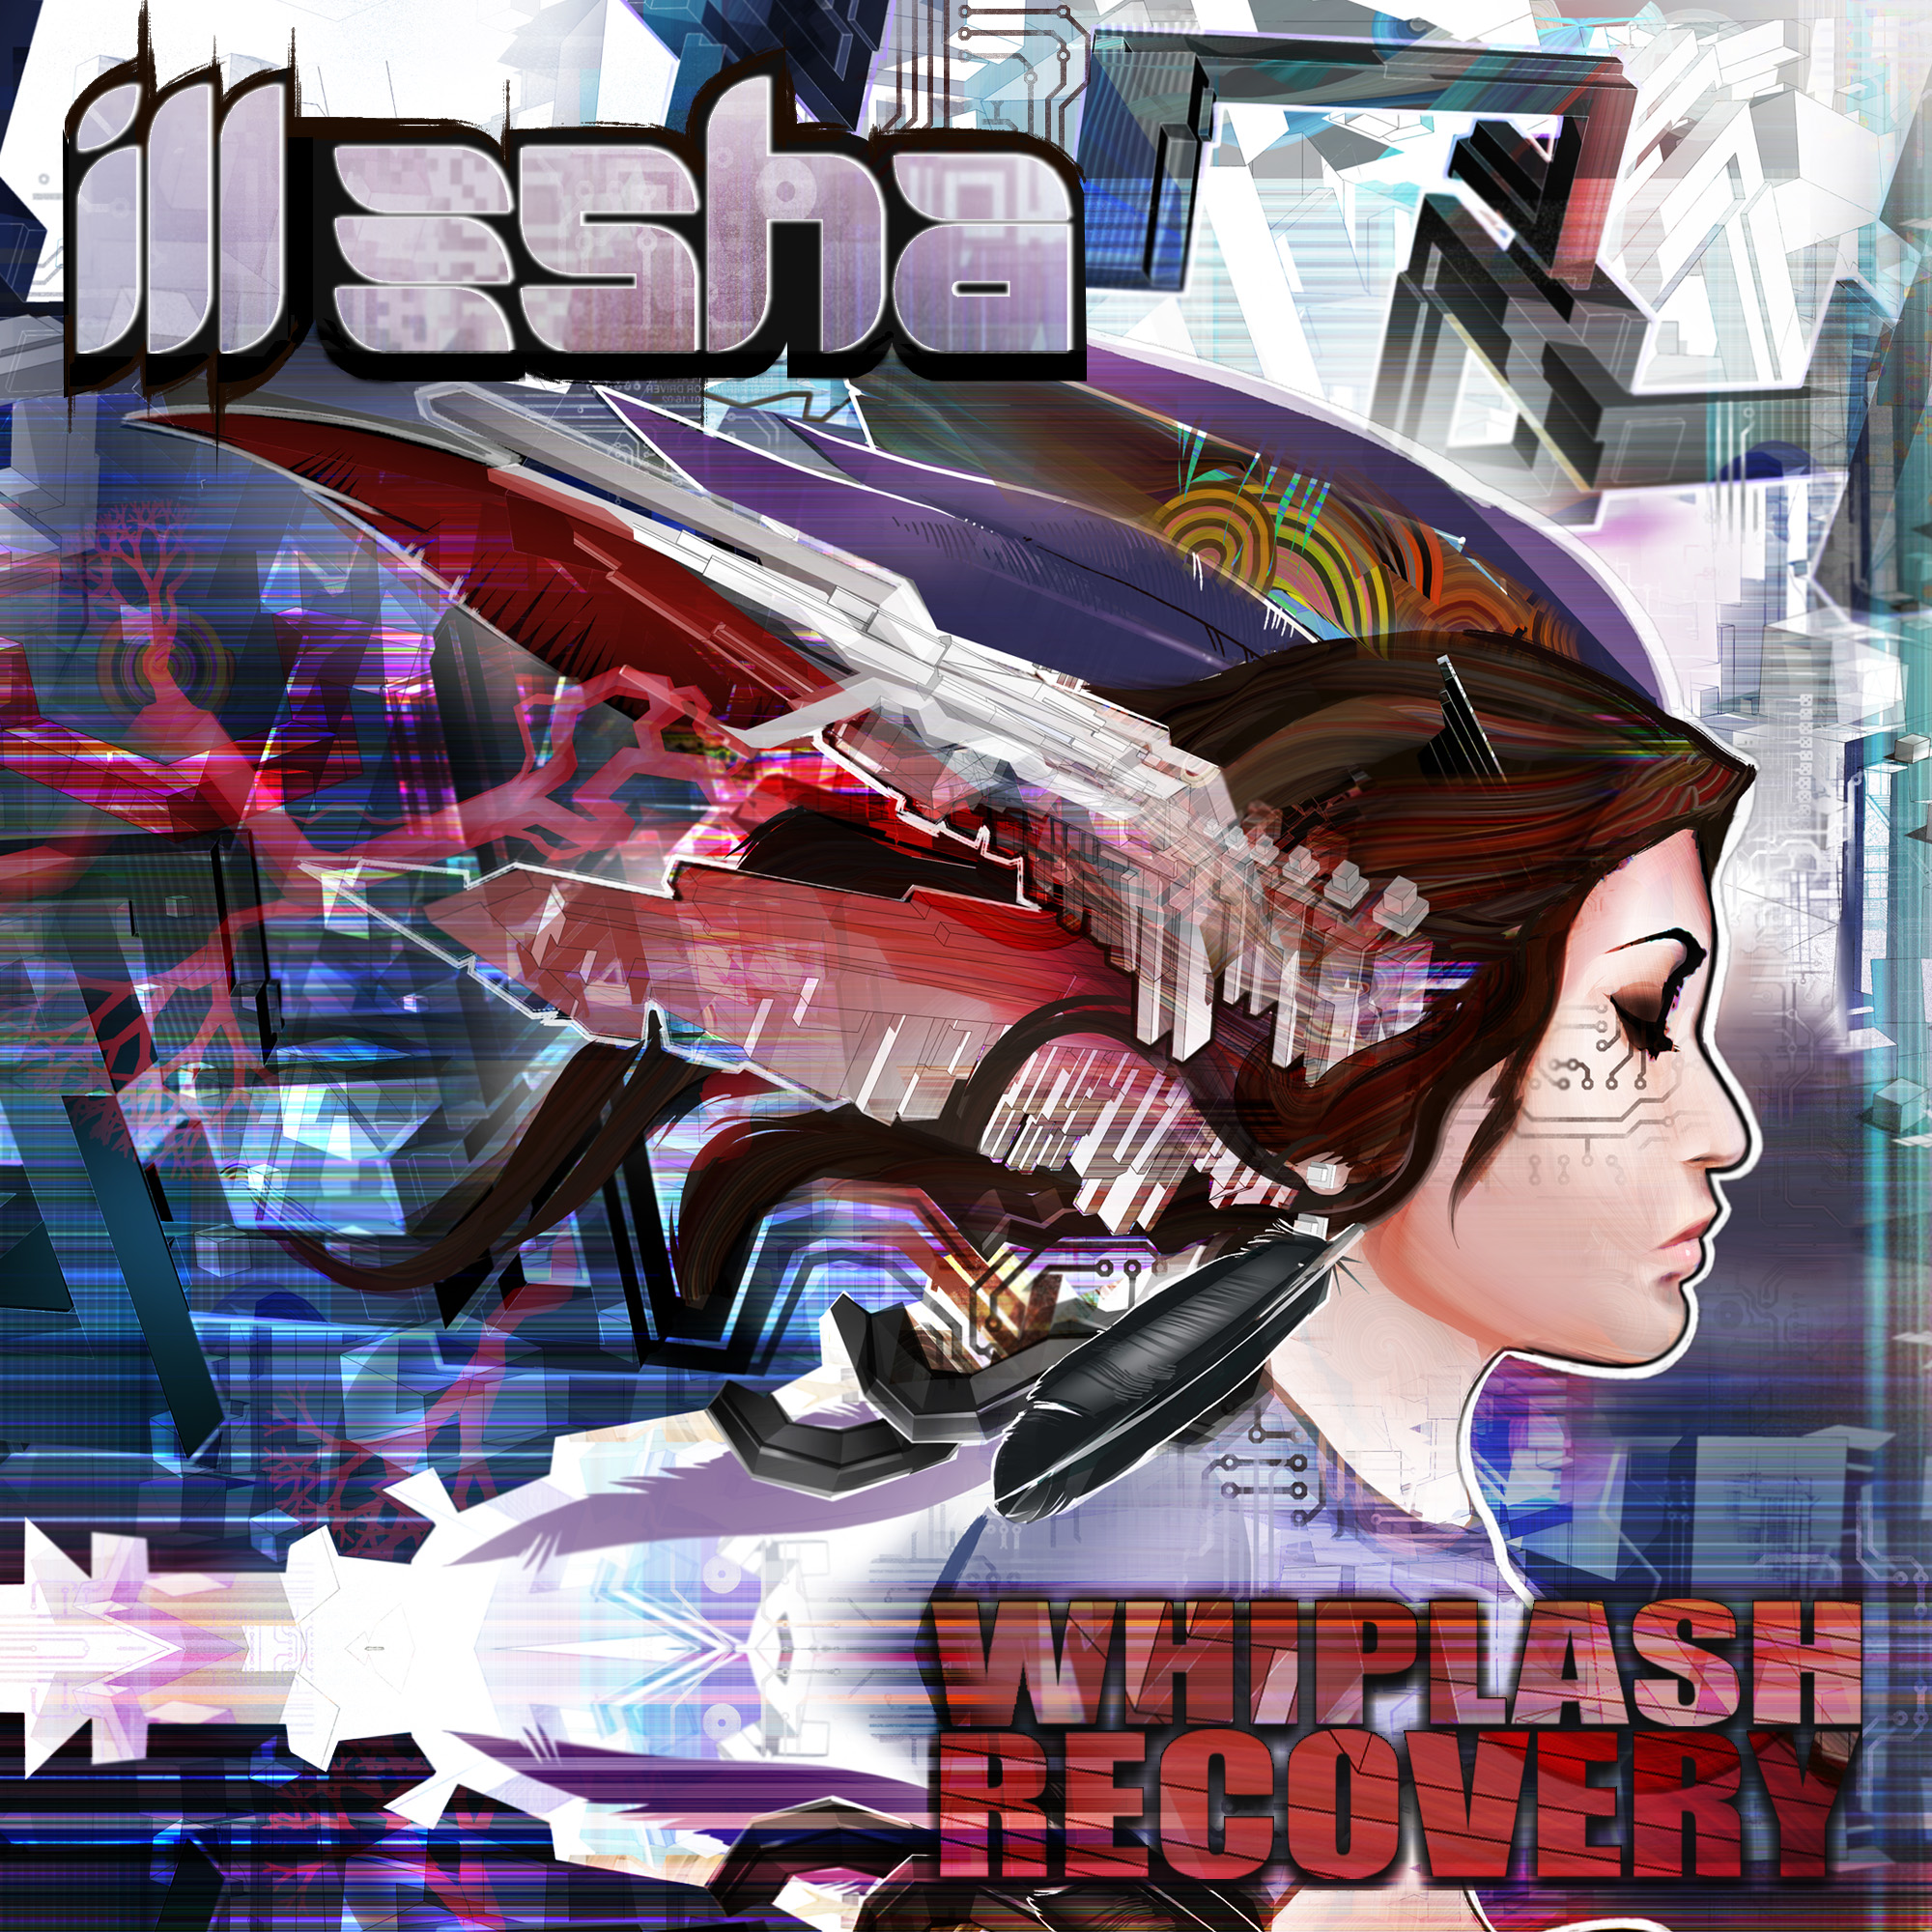 ill-esha-whiplash-recorvery-2000x2000